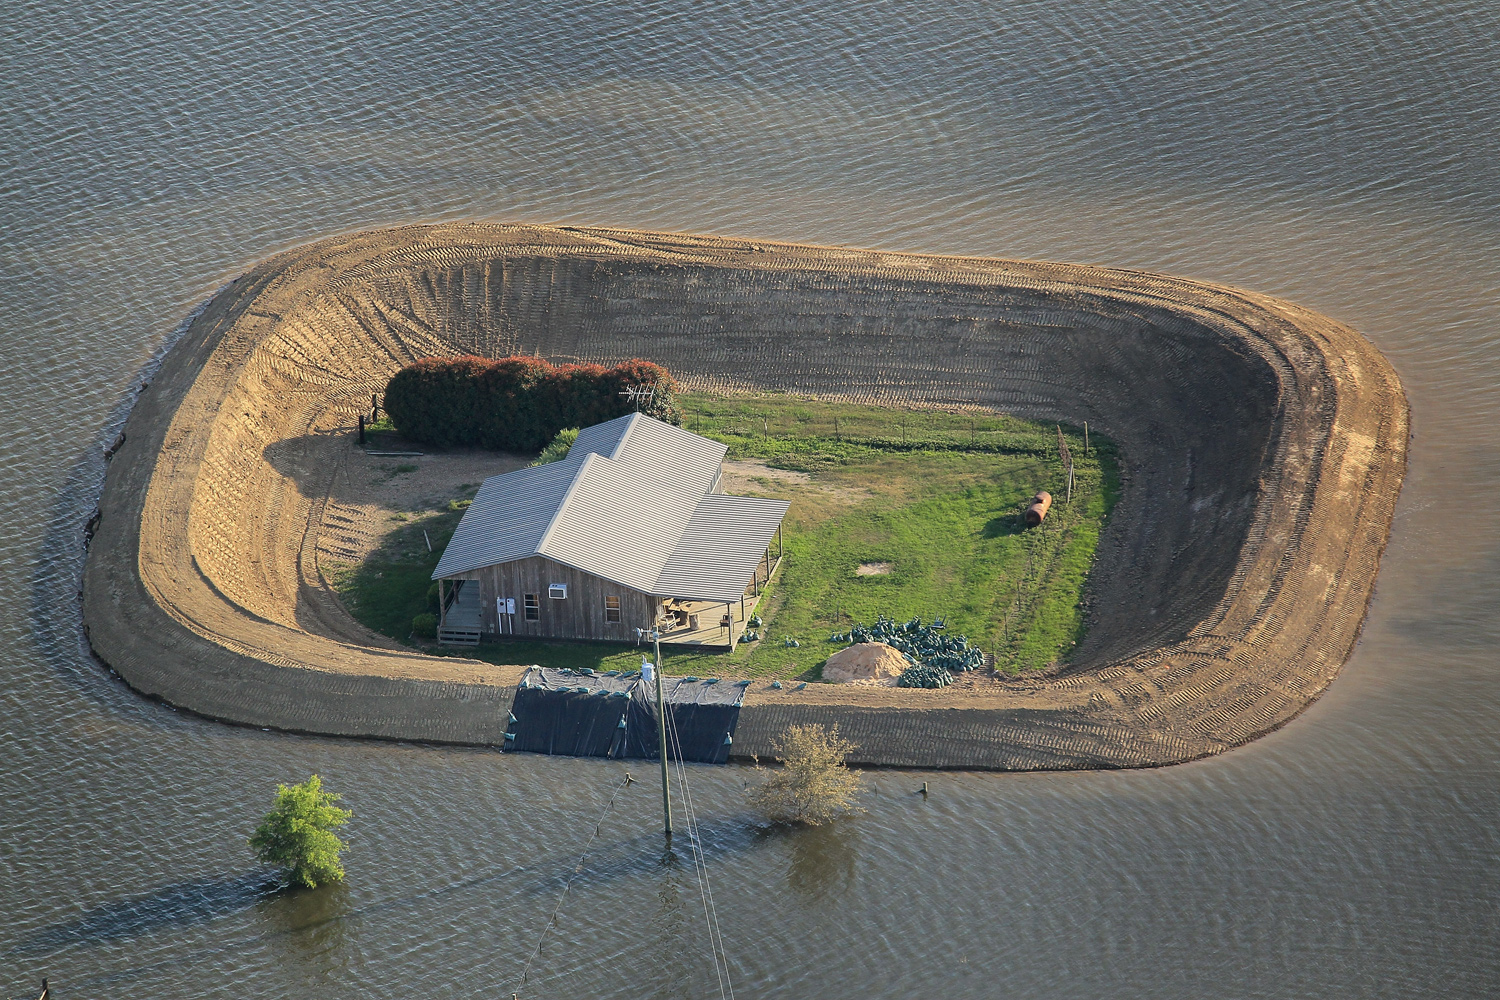 May 18, 2011. A levee protects a home surrounded by floodwater from the Yazoo River near Vicksburg, Mississippi. Heavy rains left the ground saturated and caused widespread flooding along the Mississippi River from Illinois to Louisiana.